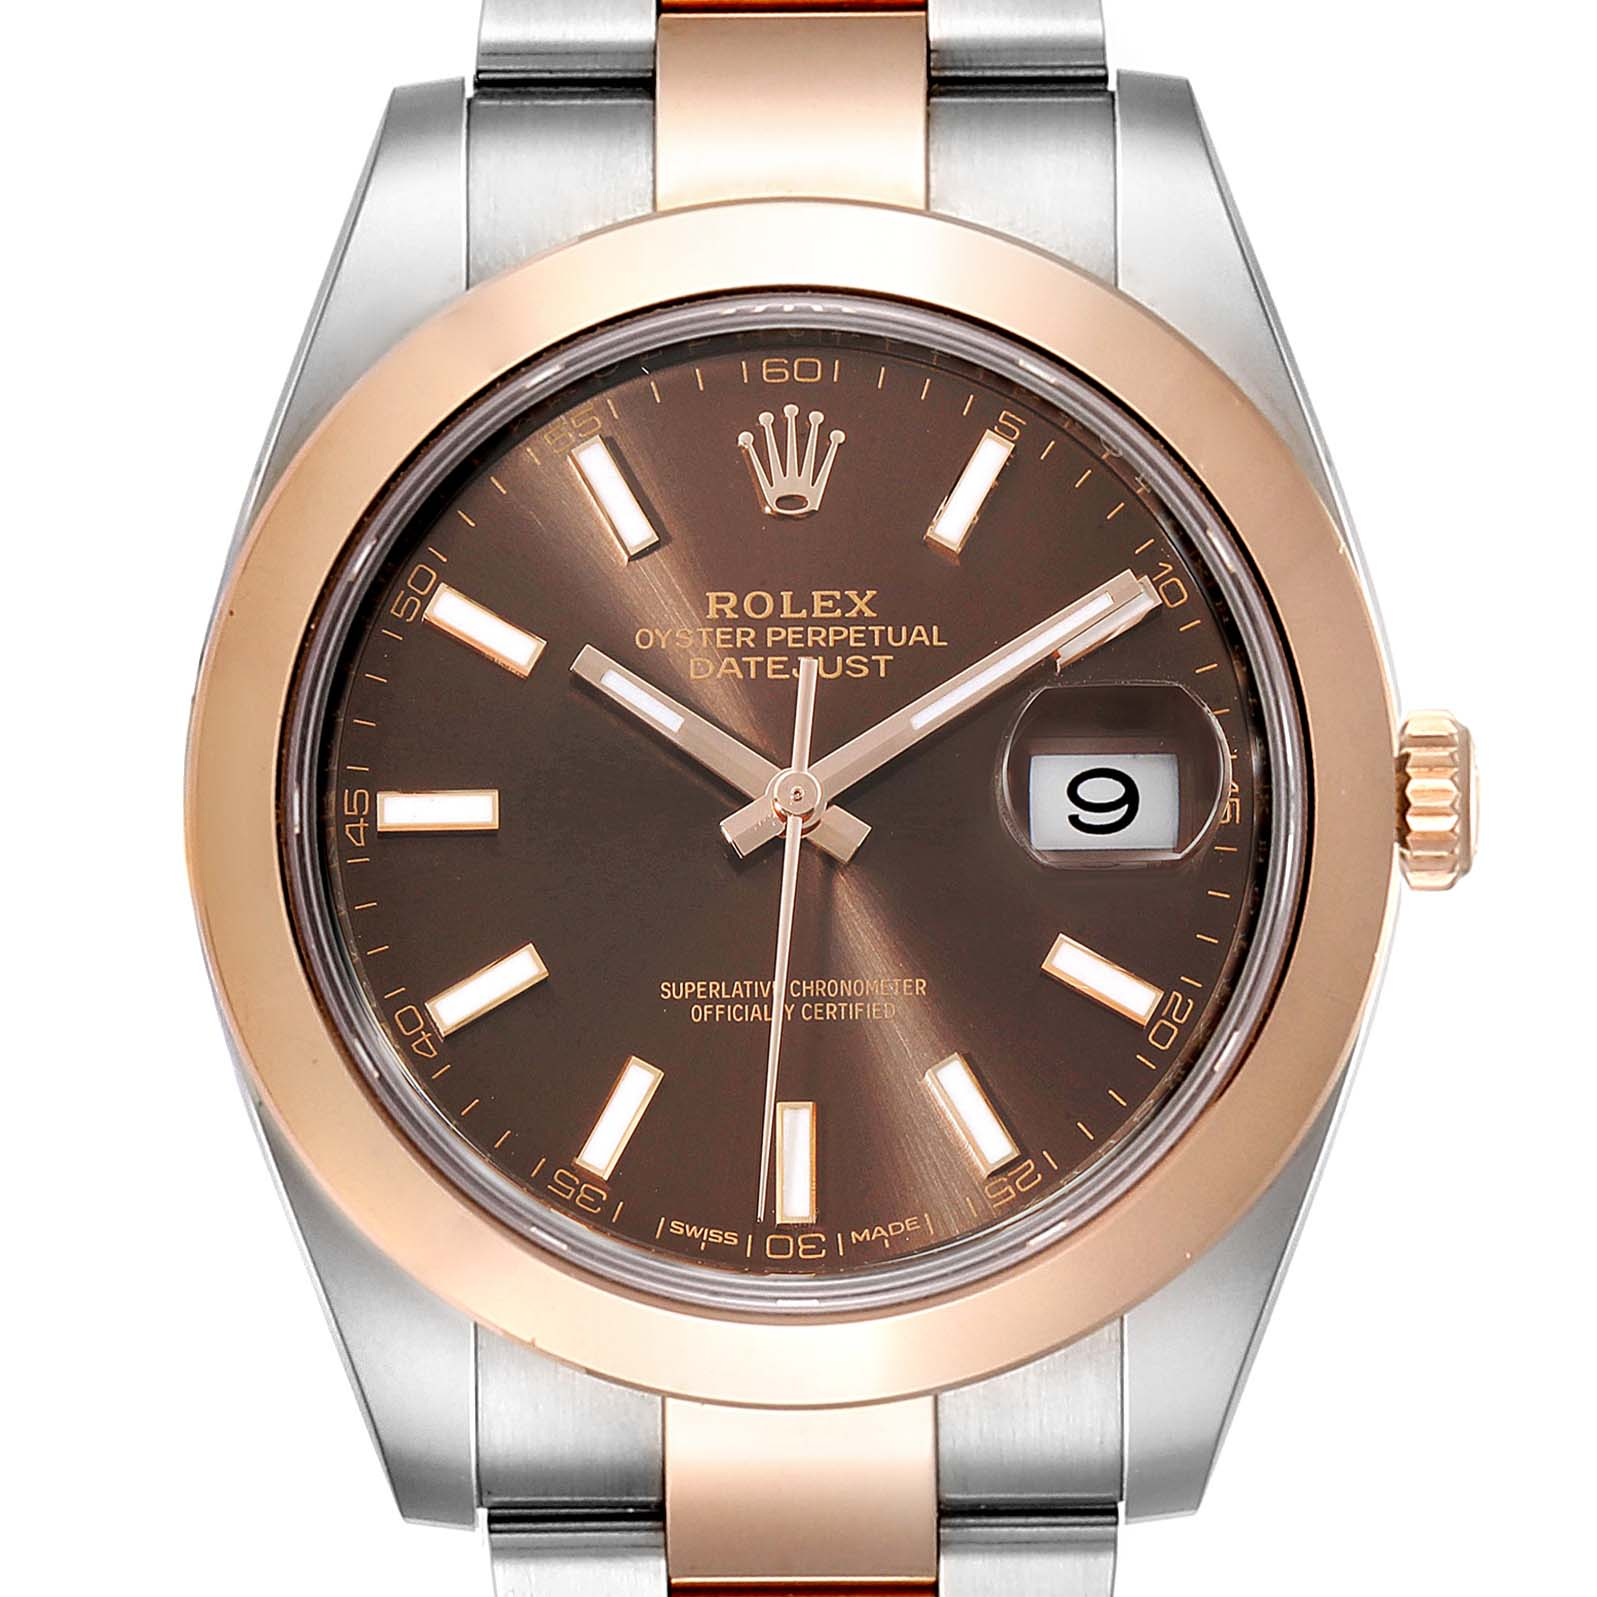 Rolex Datejust 41 Steel Rose Gold Brown Dial Mens Watch 126301 Box Card